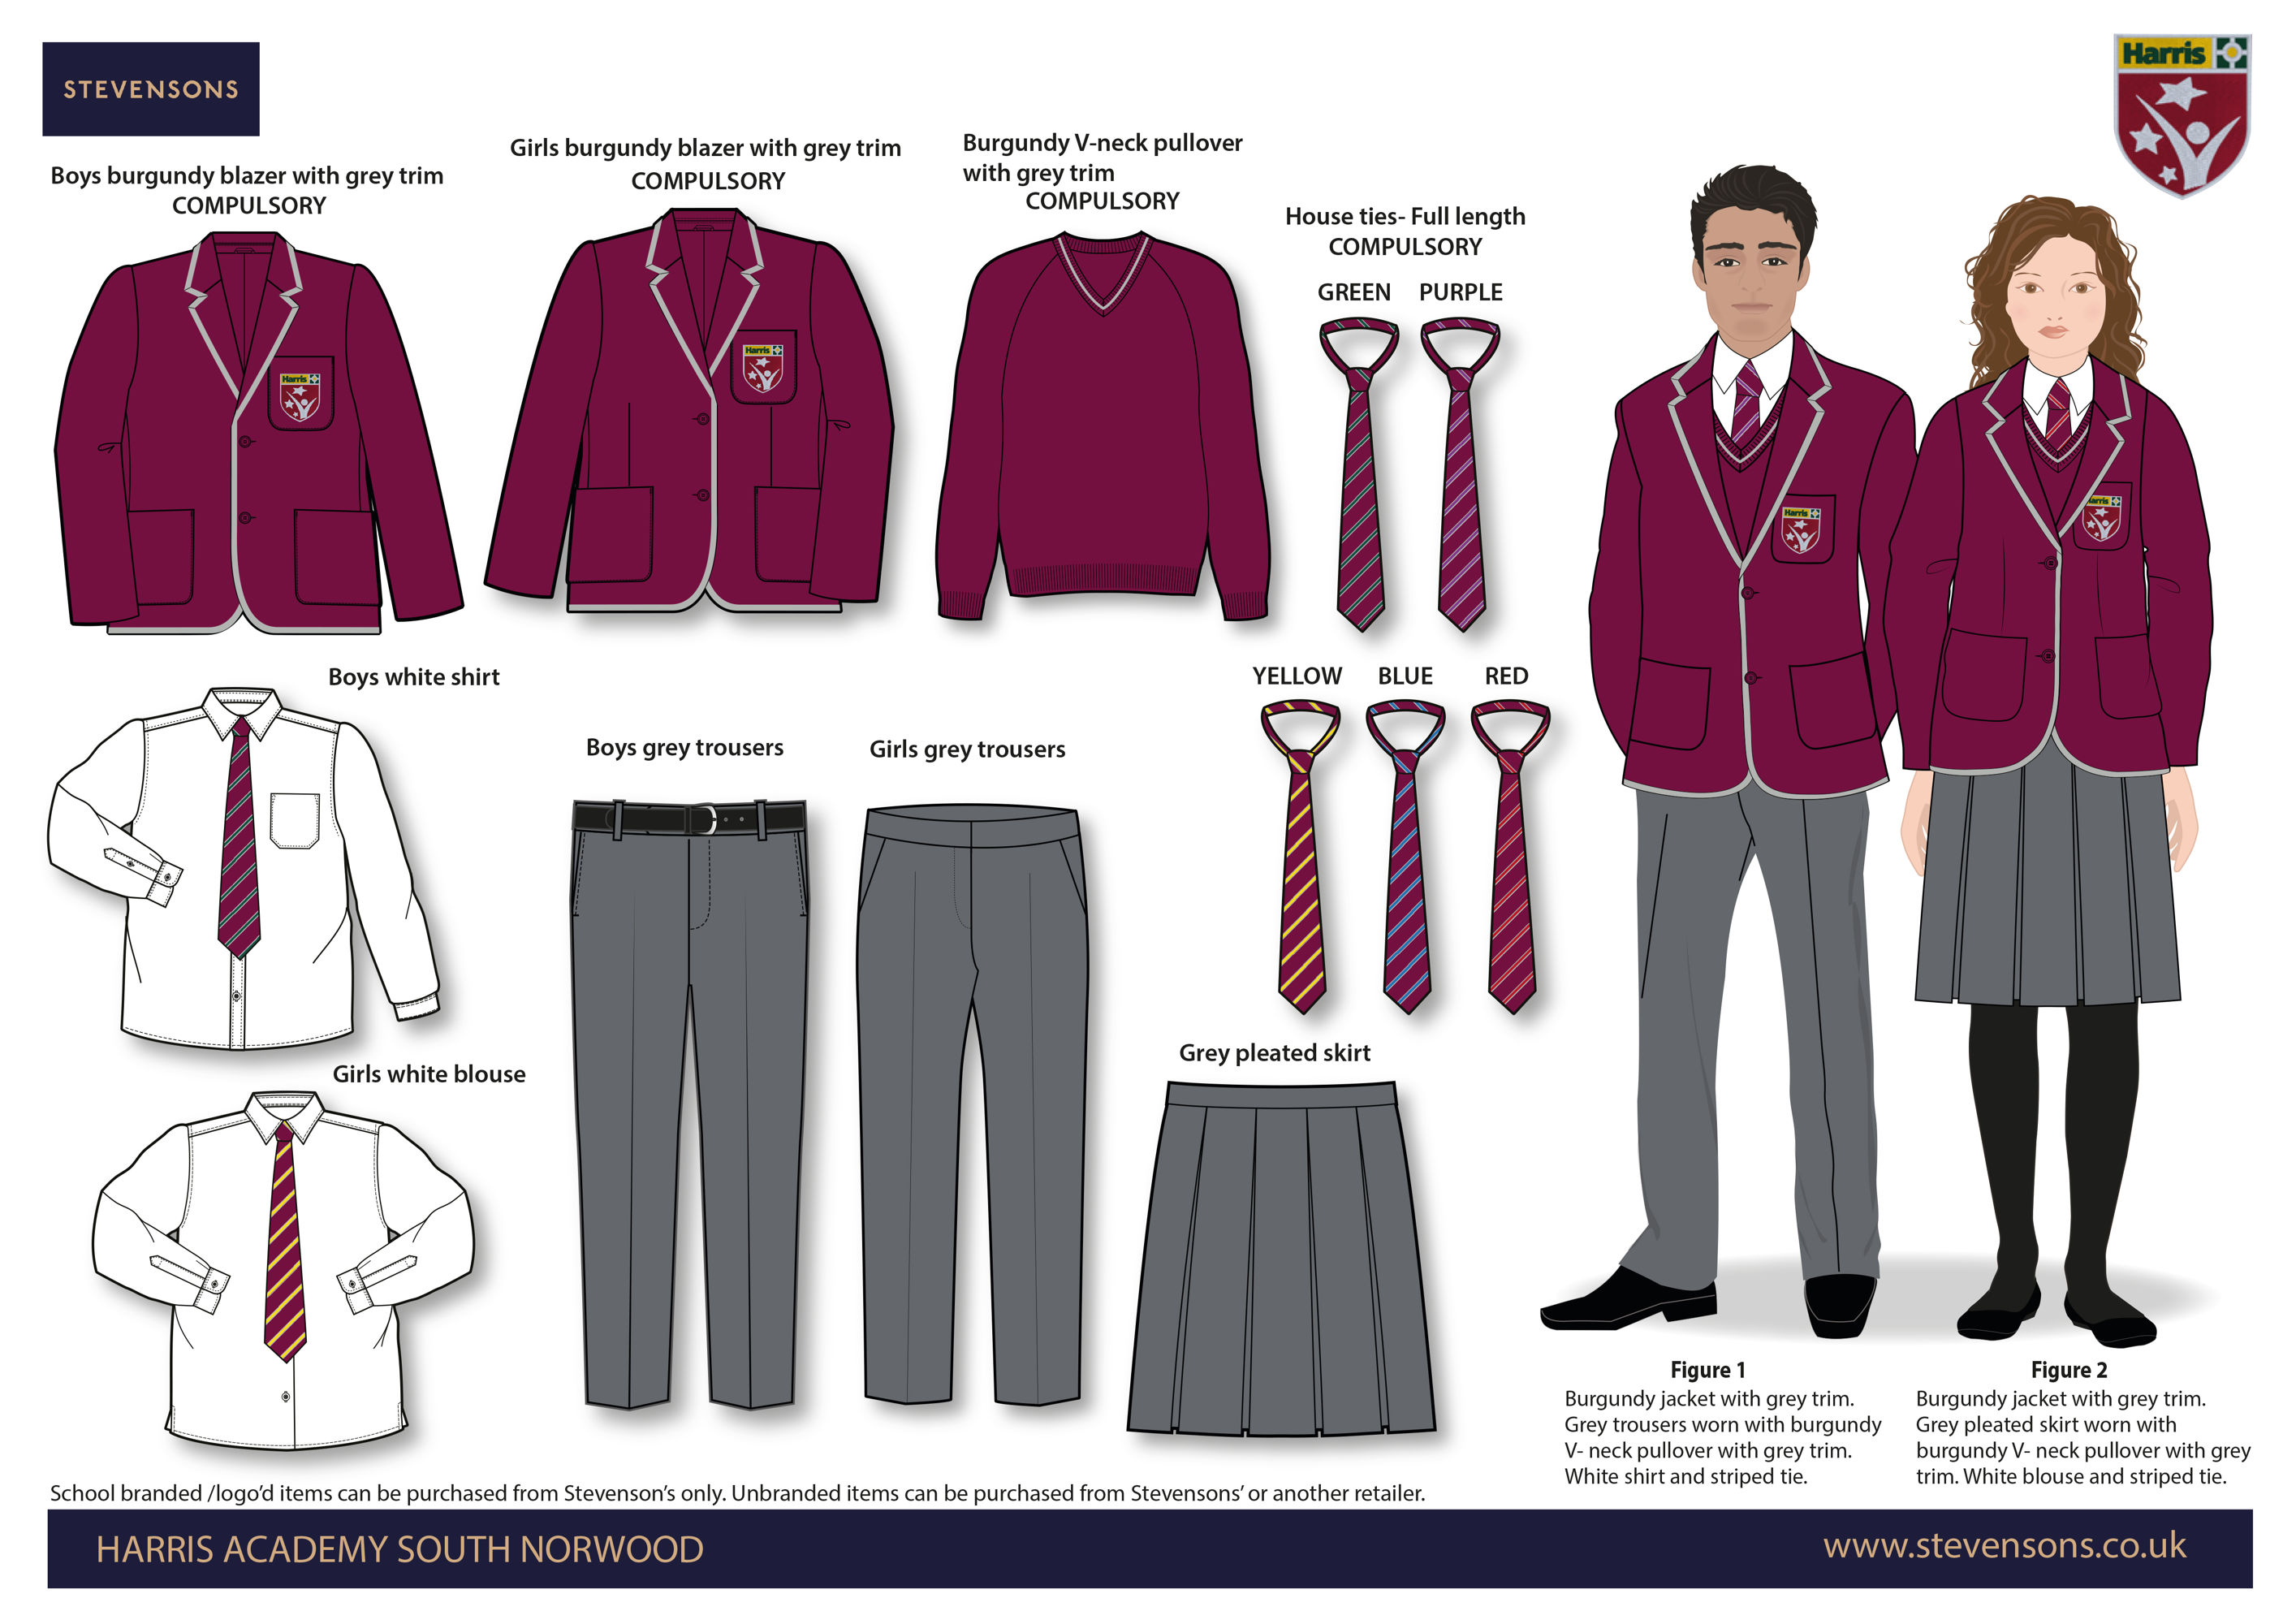 Harris Academy South Norwood DAYWEAR BOARD